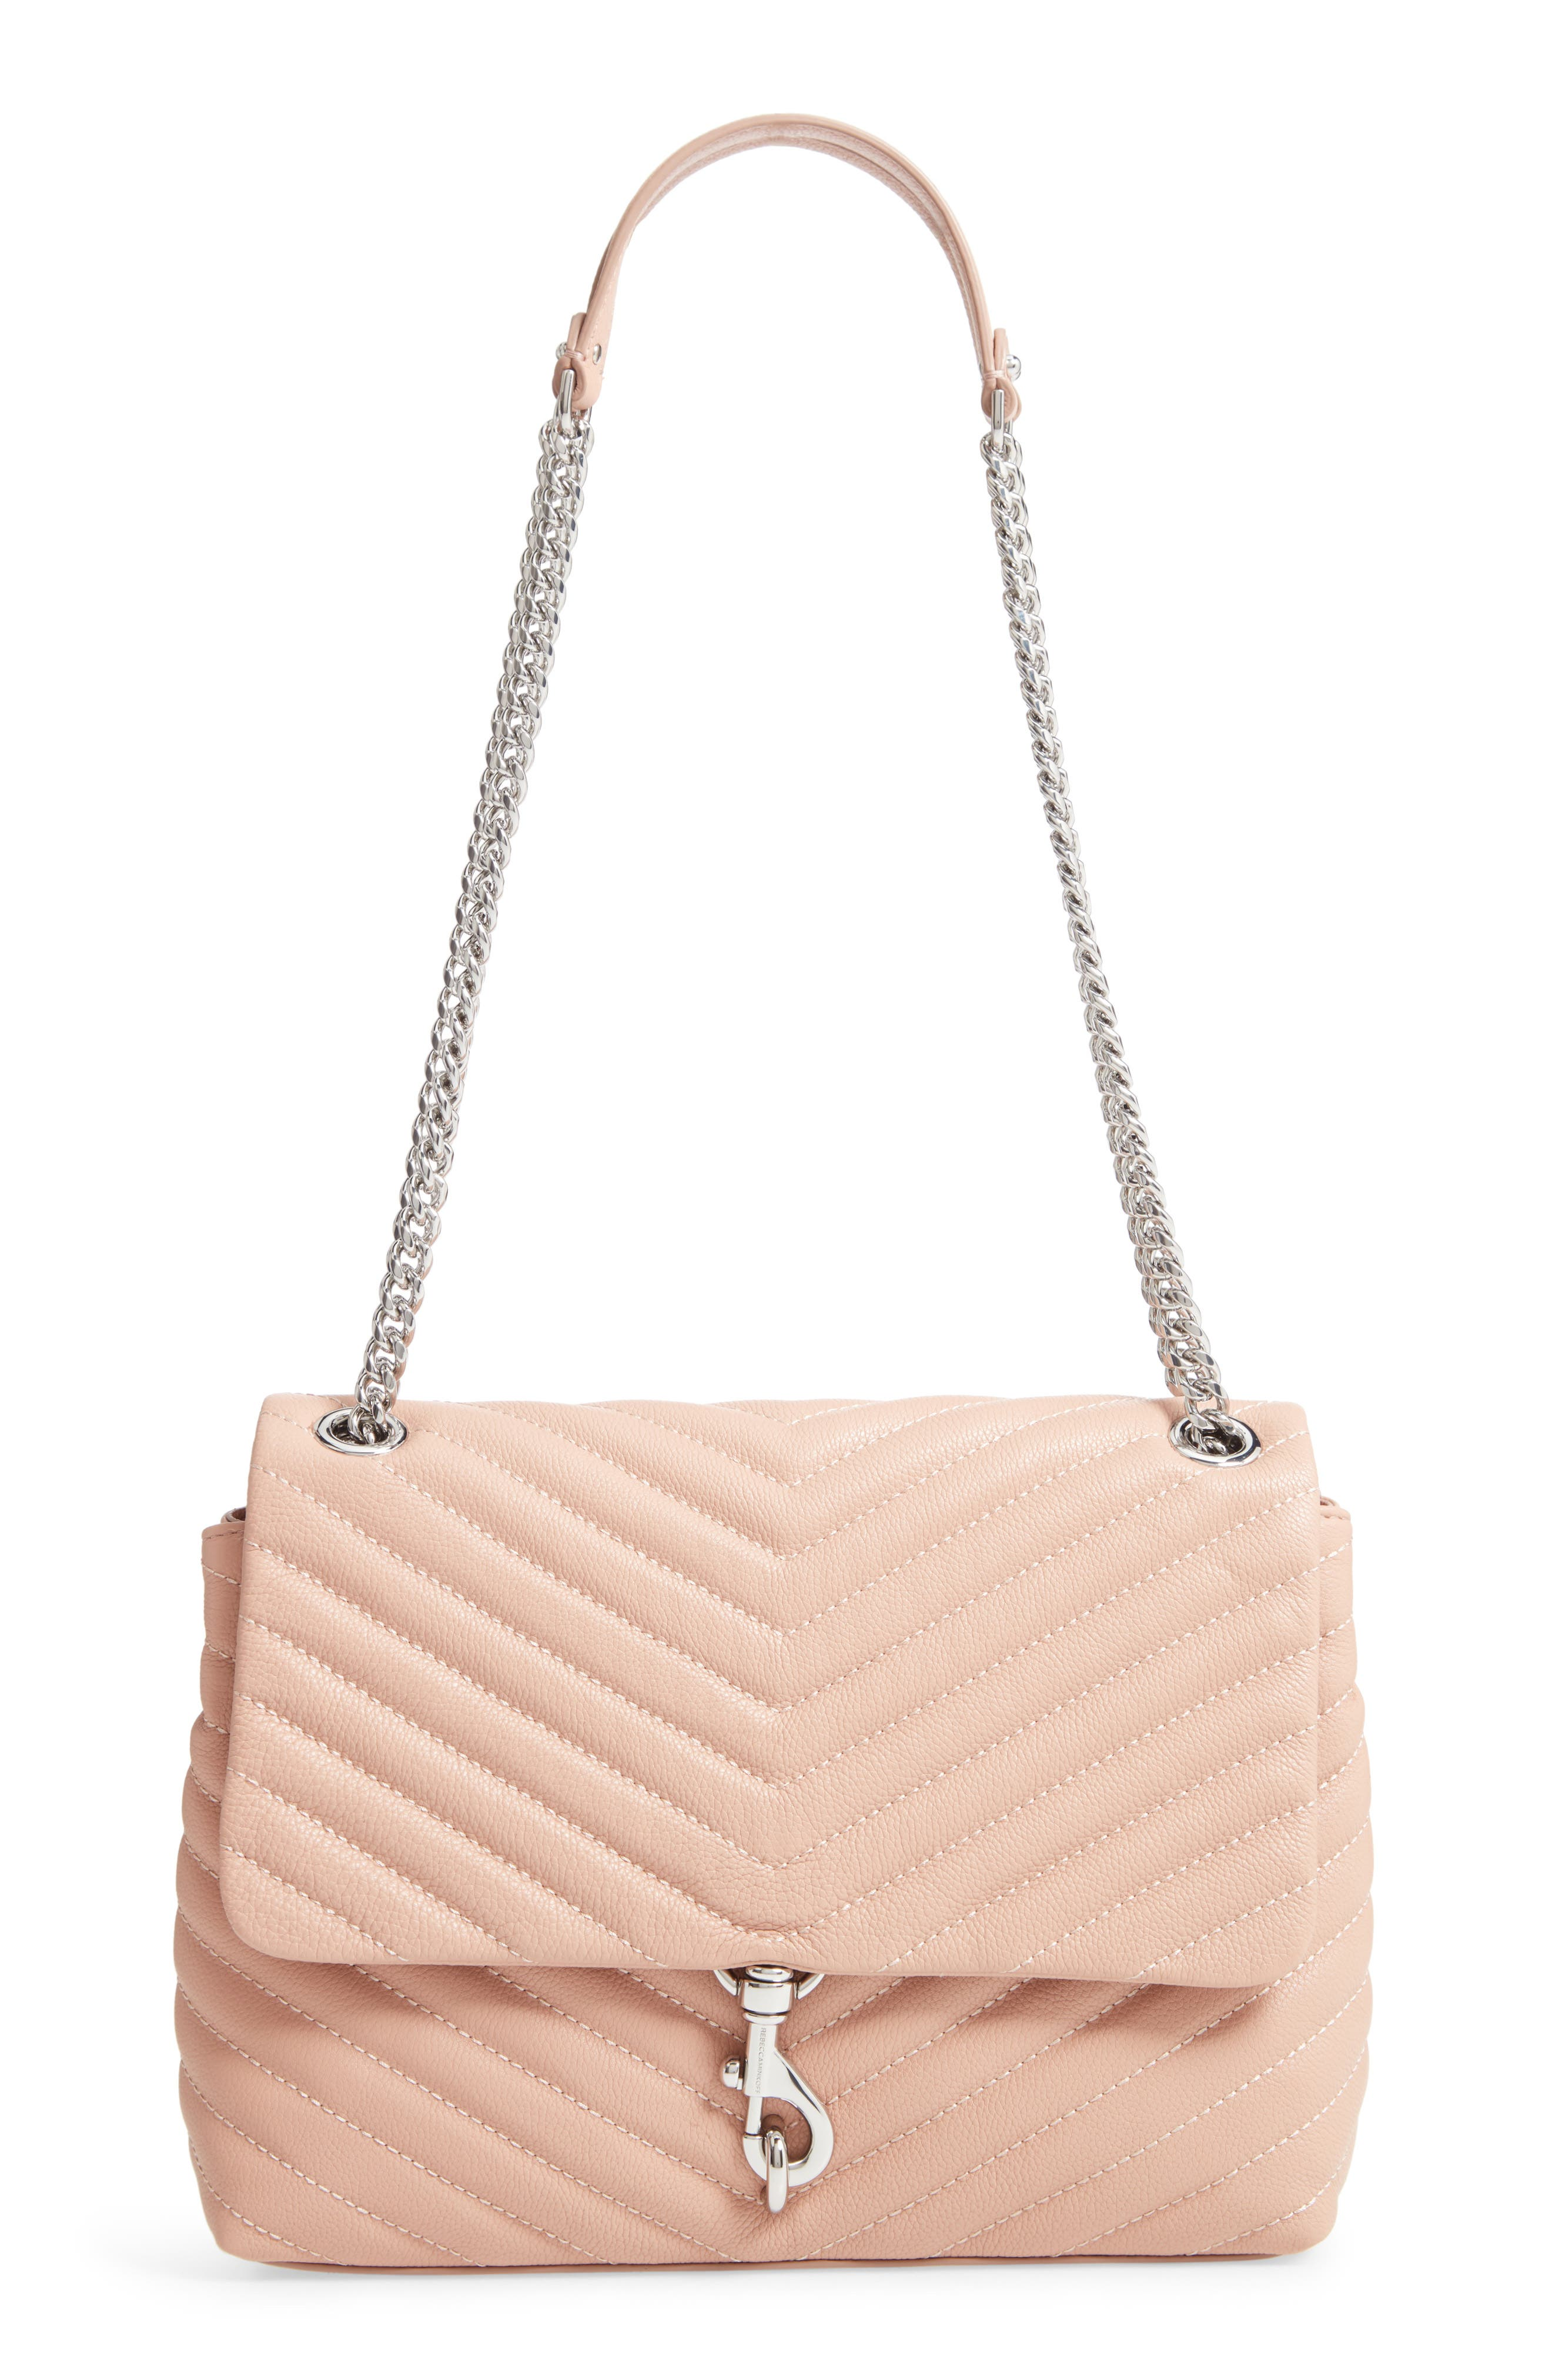 Edie Flap Quilted Leather Shoulder Bag,                             Main thumbnail 1, color,                             DOE